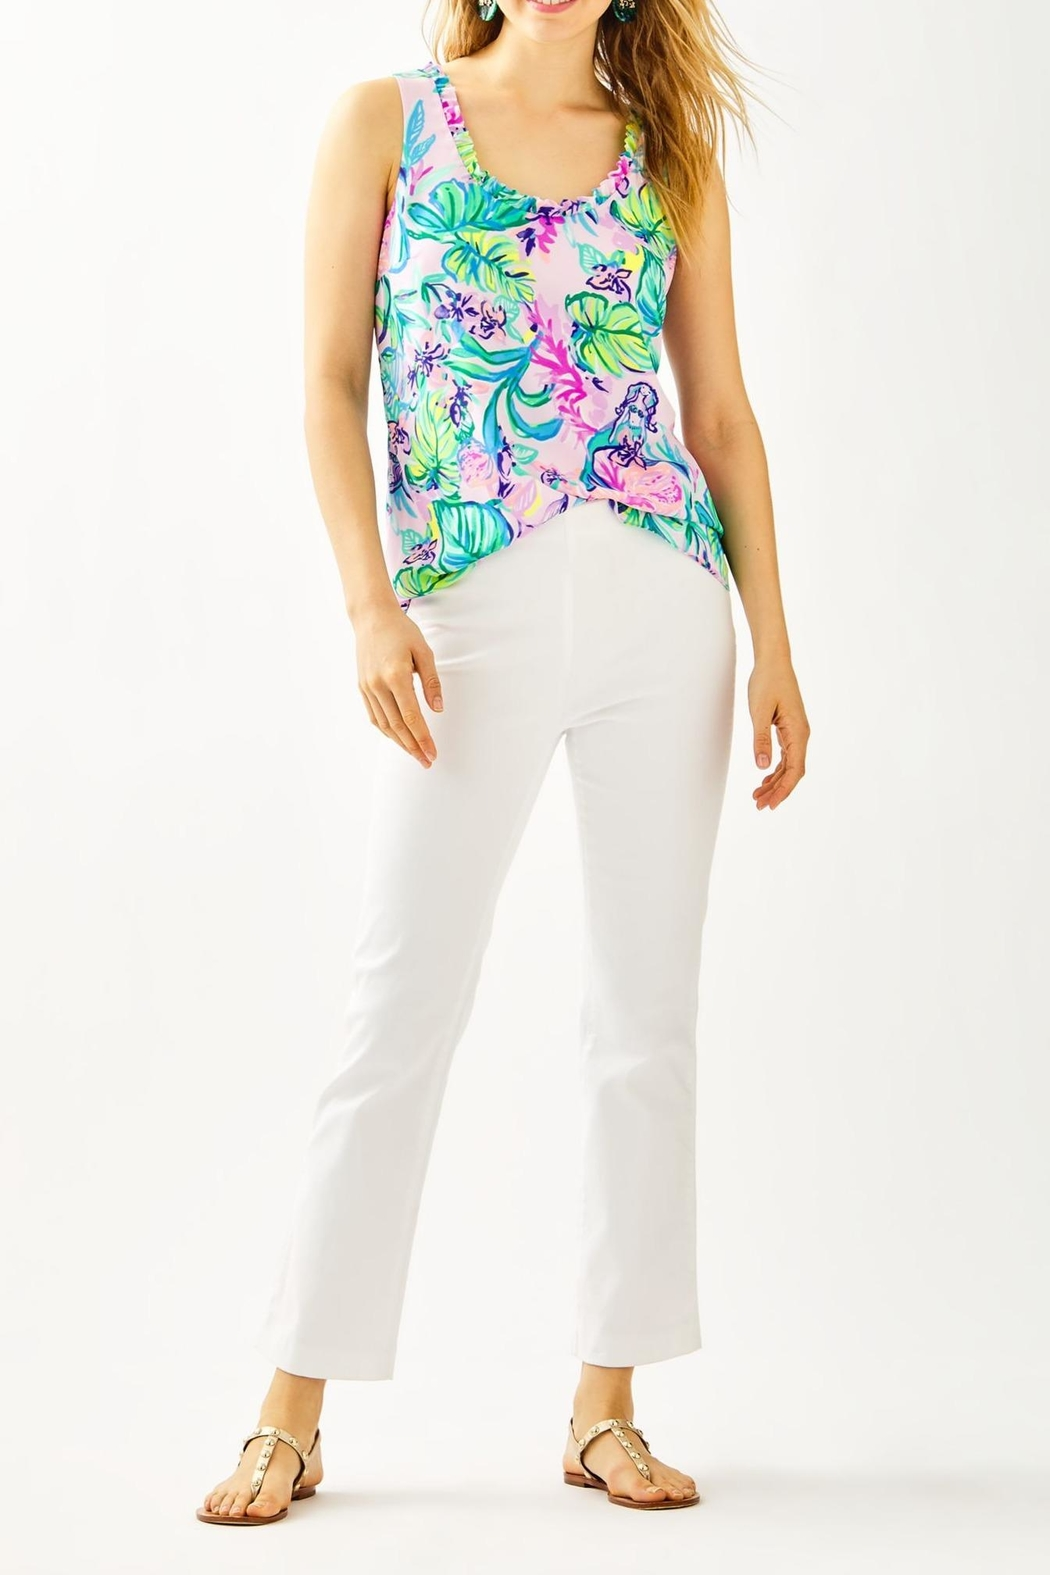 Lilly Pulitzer Ocean Cay Pant - Back Cropped Image